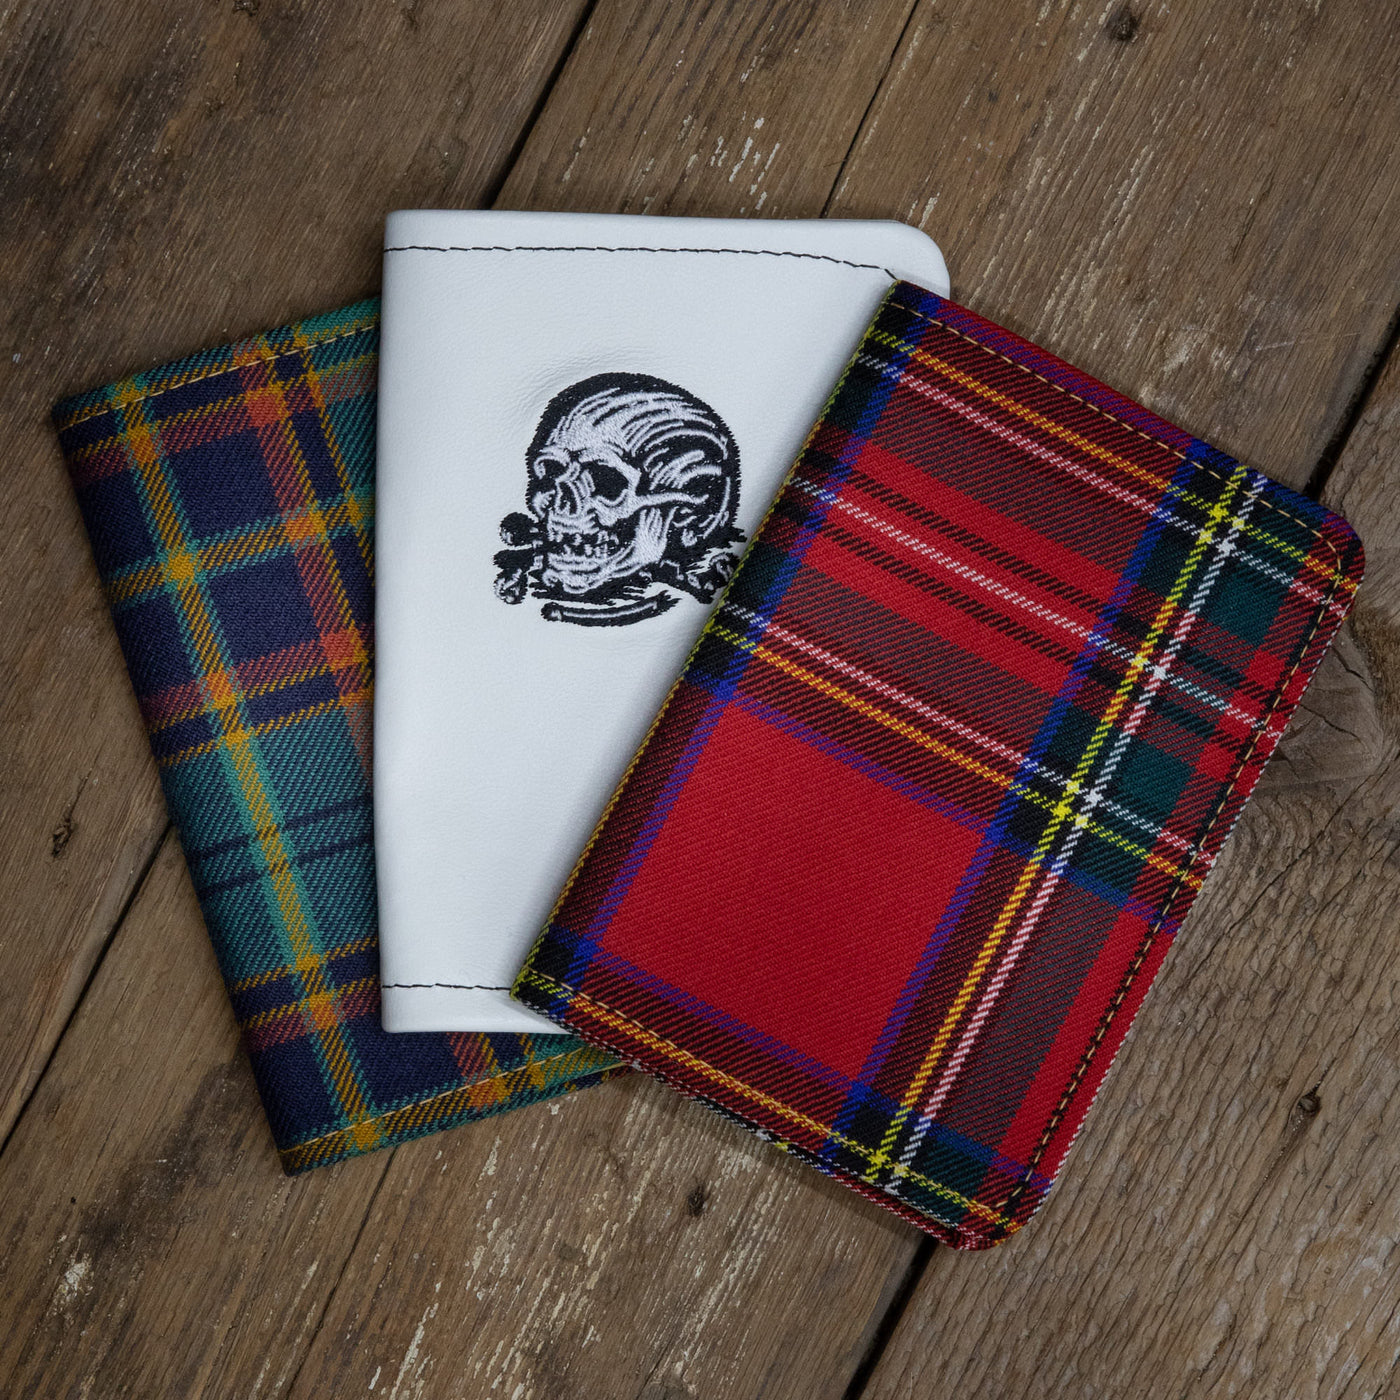 SEAMUS GOLF - MAKERS OF FINE WOOL HEADCOVERS, POUCHES & GOLF